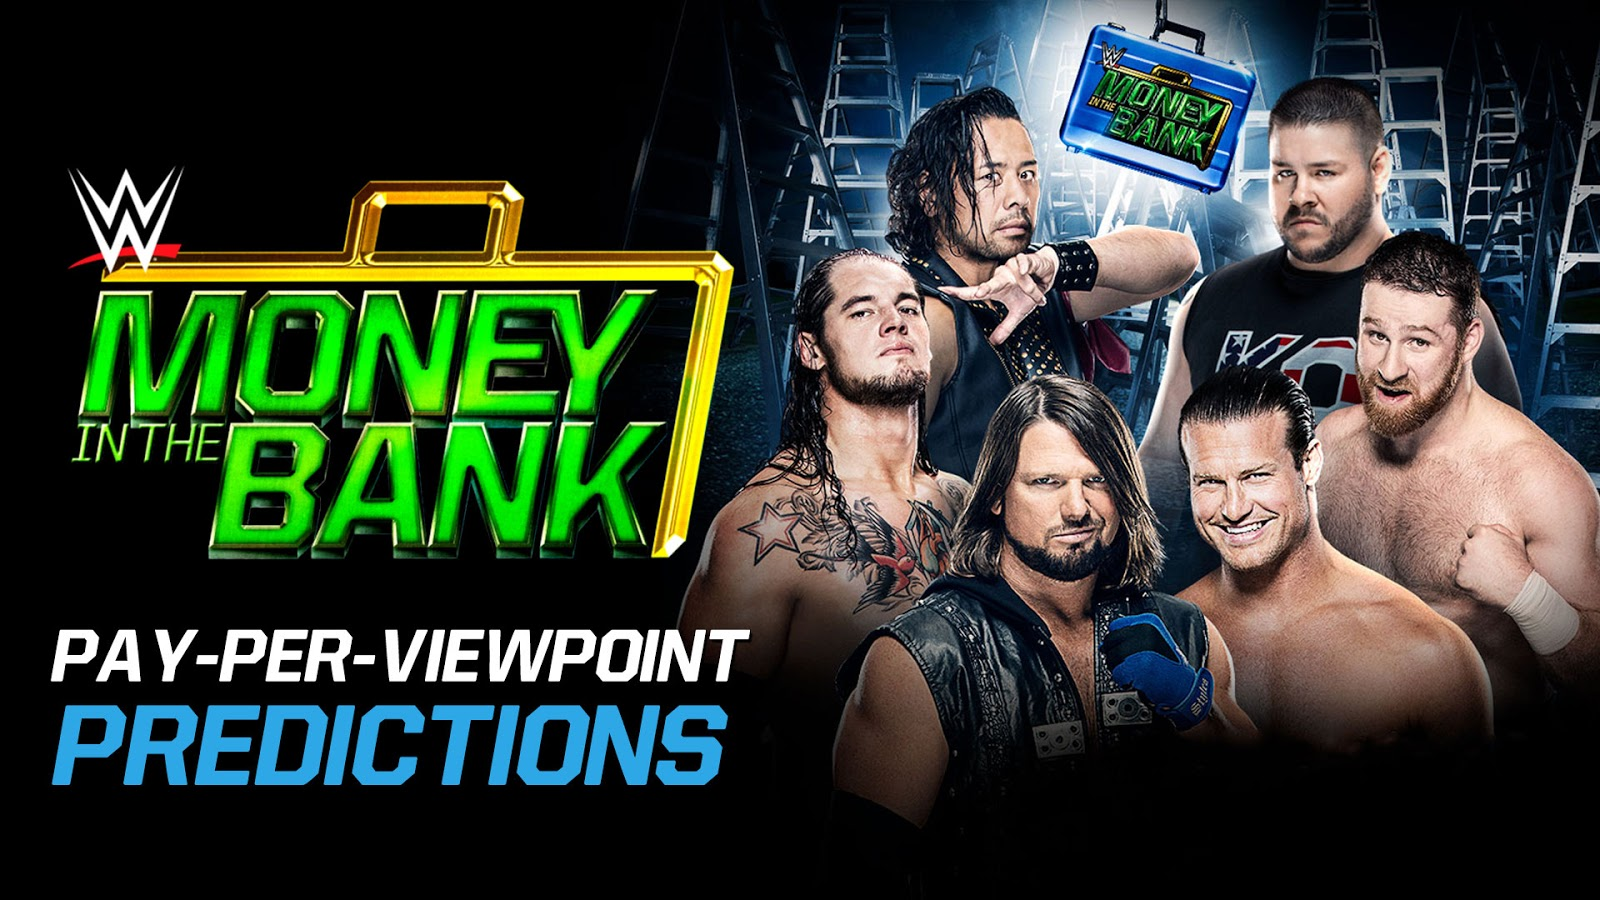 WWE MONEY IN THE BANK 2017 spoilers podcast